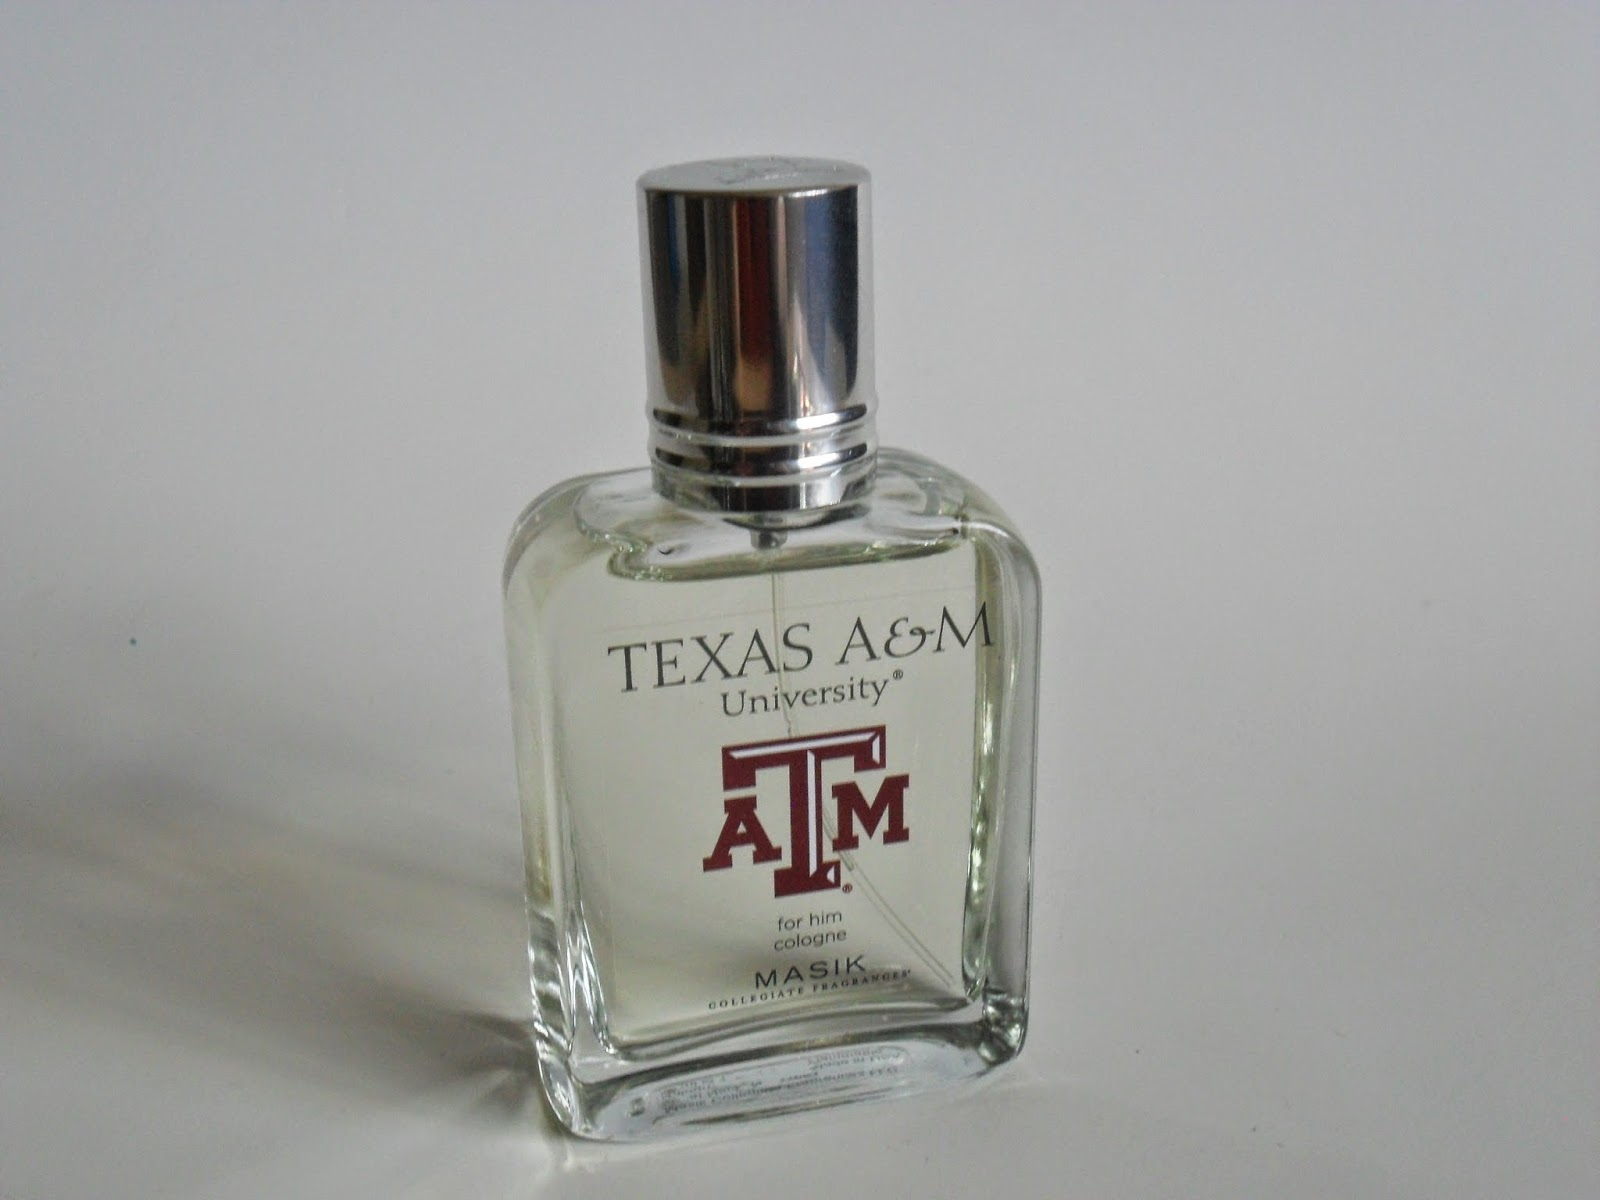 Wear your Favorite College Fragrance with Masik Collegiate. Review & Giveaway